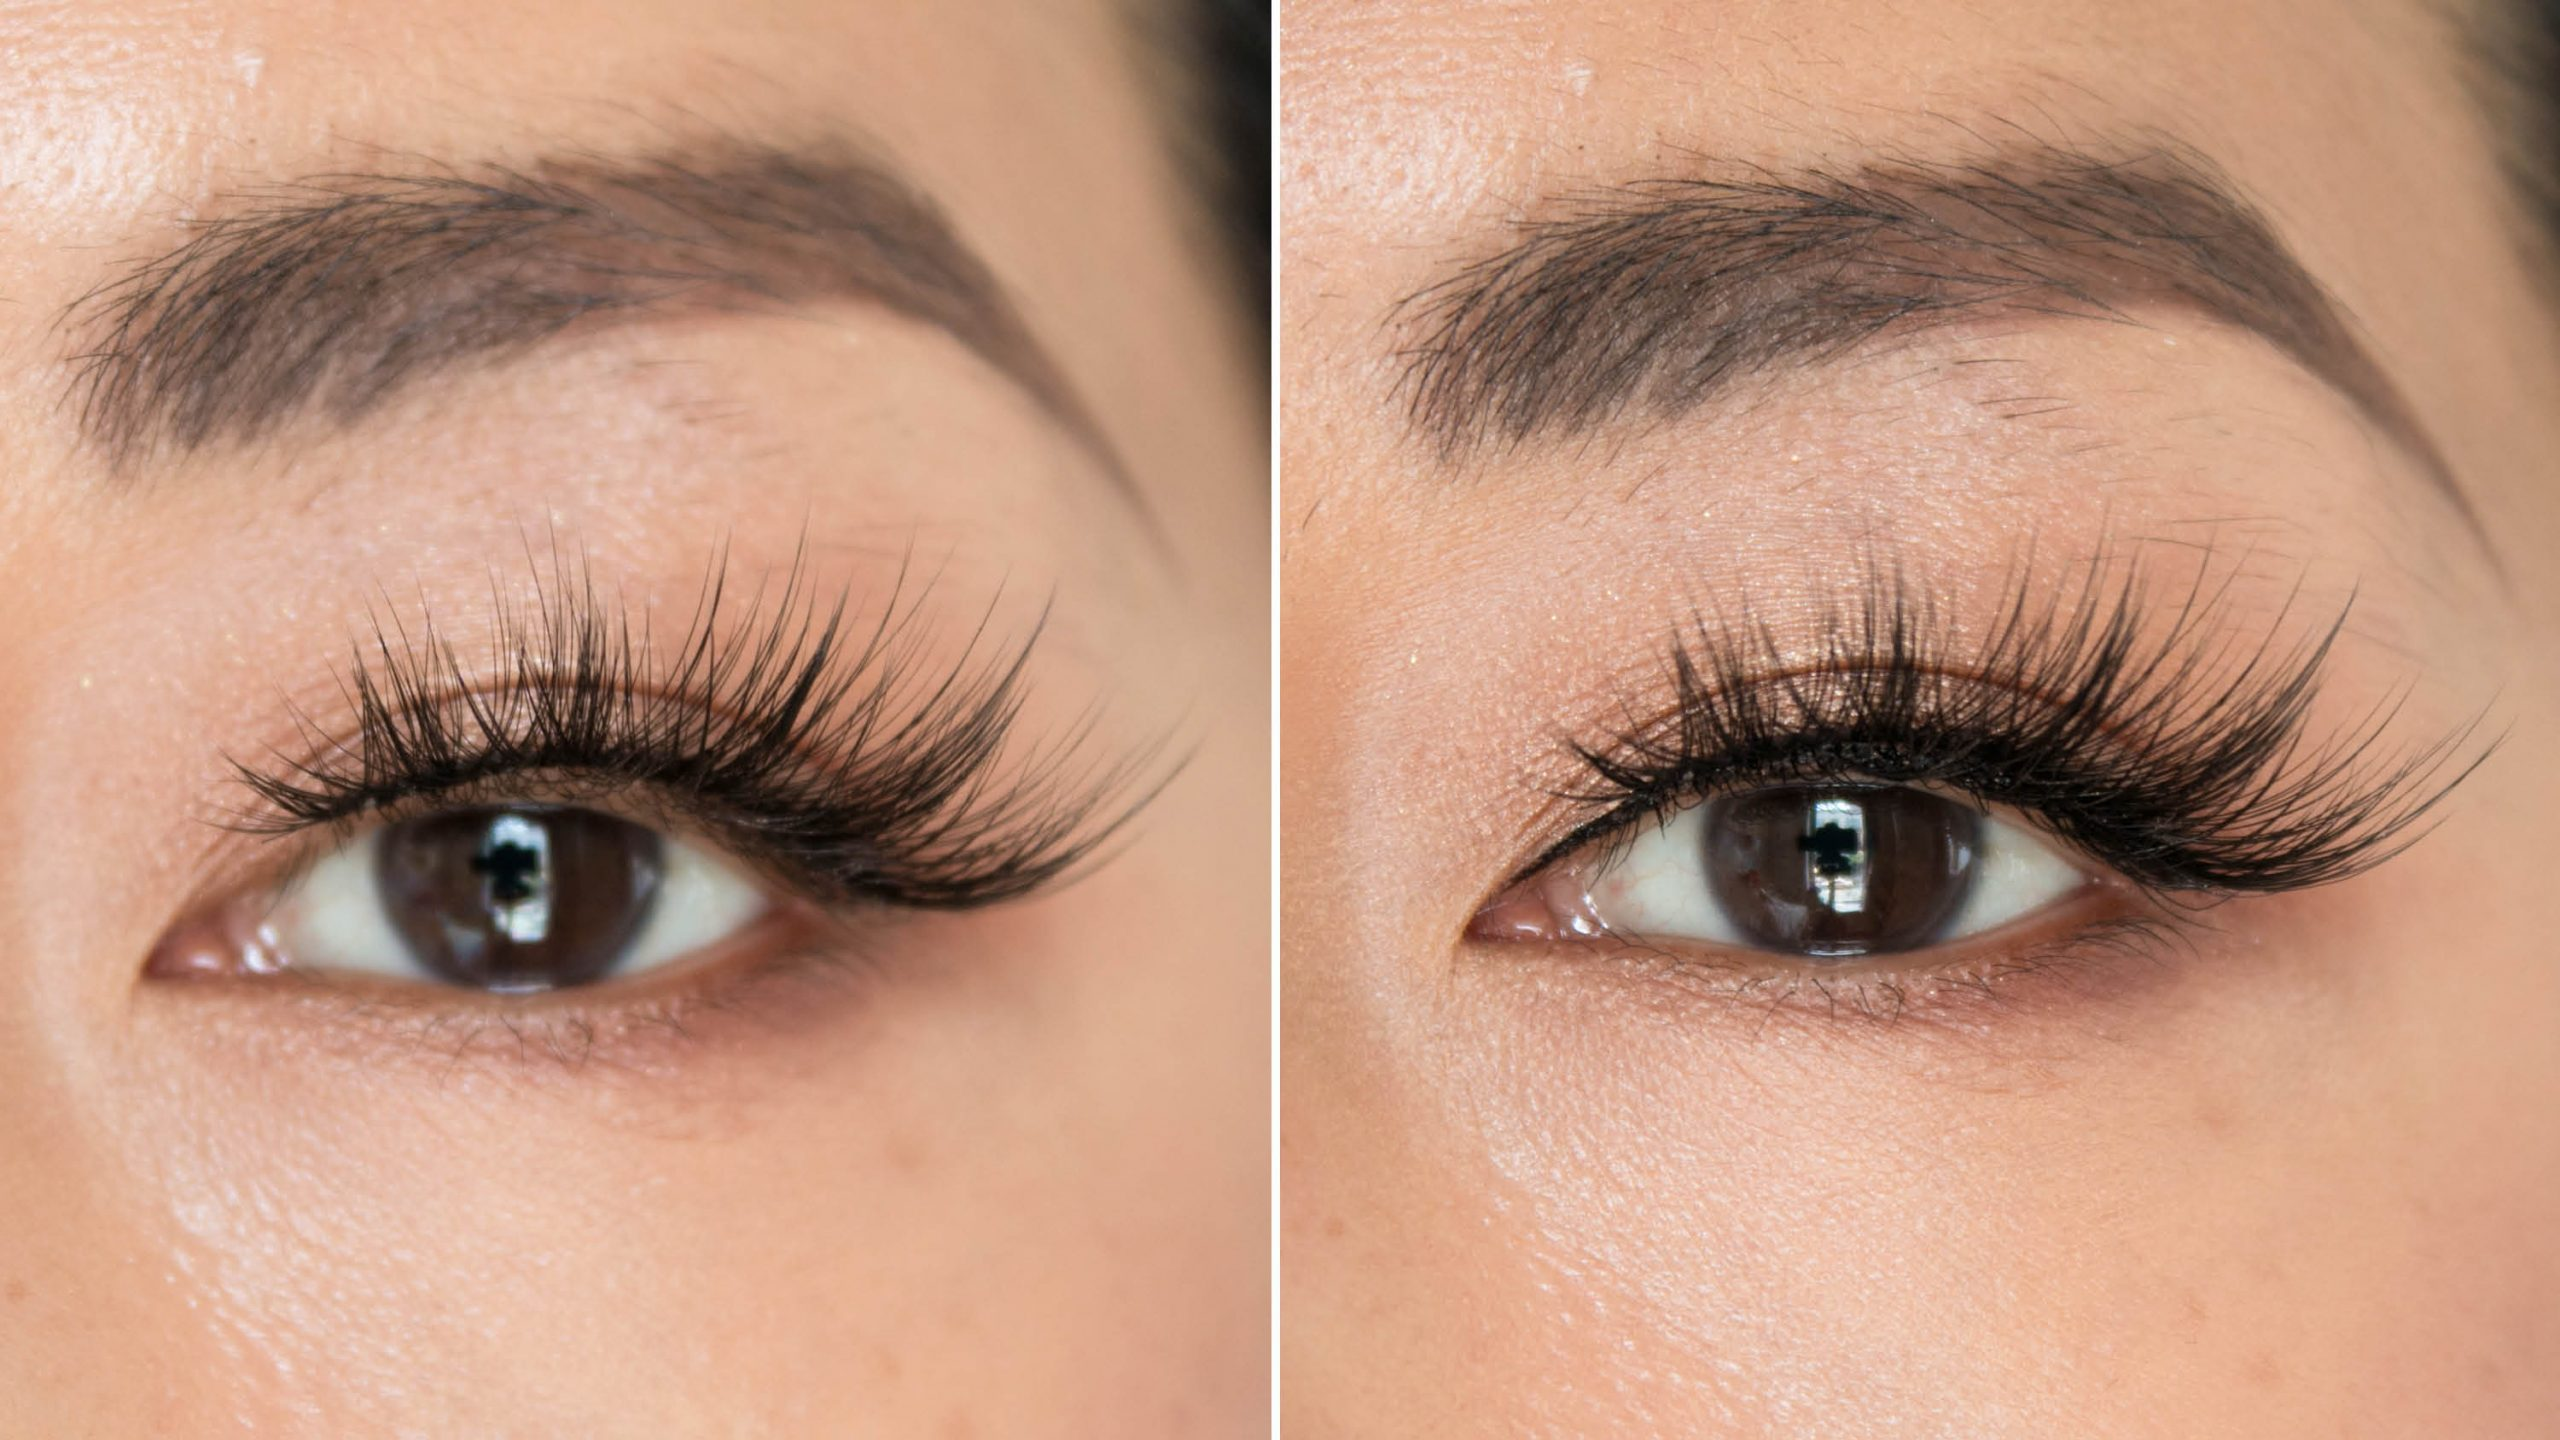 DIY Lash Extension Mistakes: How to Avoid the Four Most Common Ones